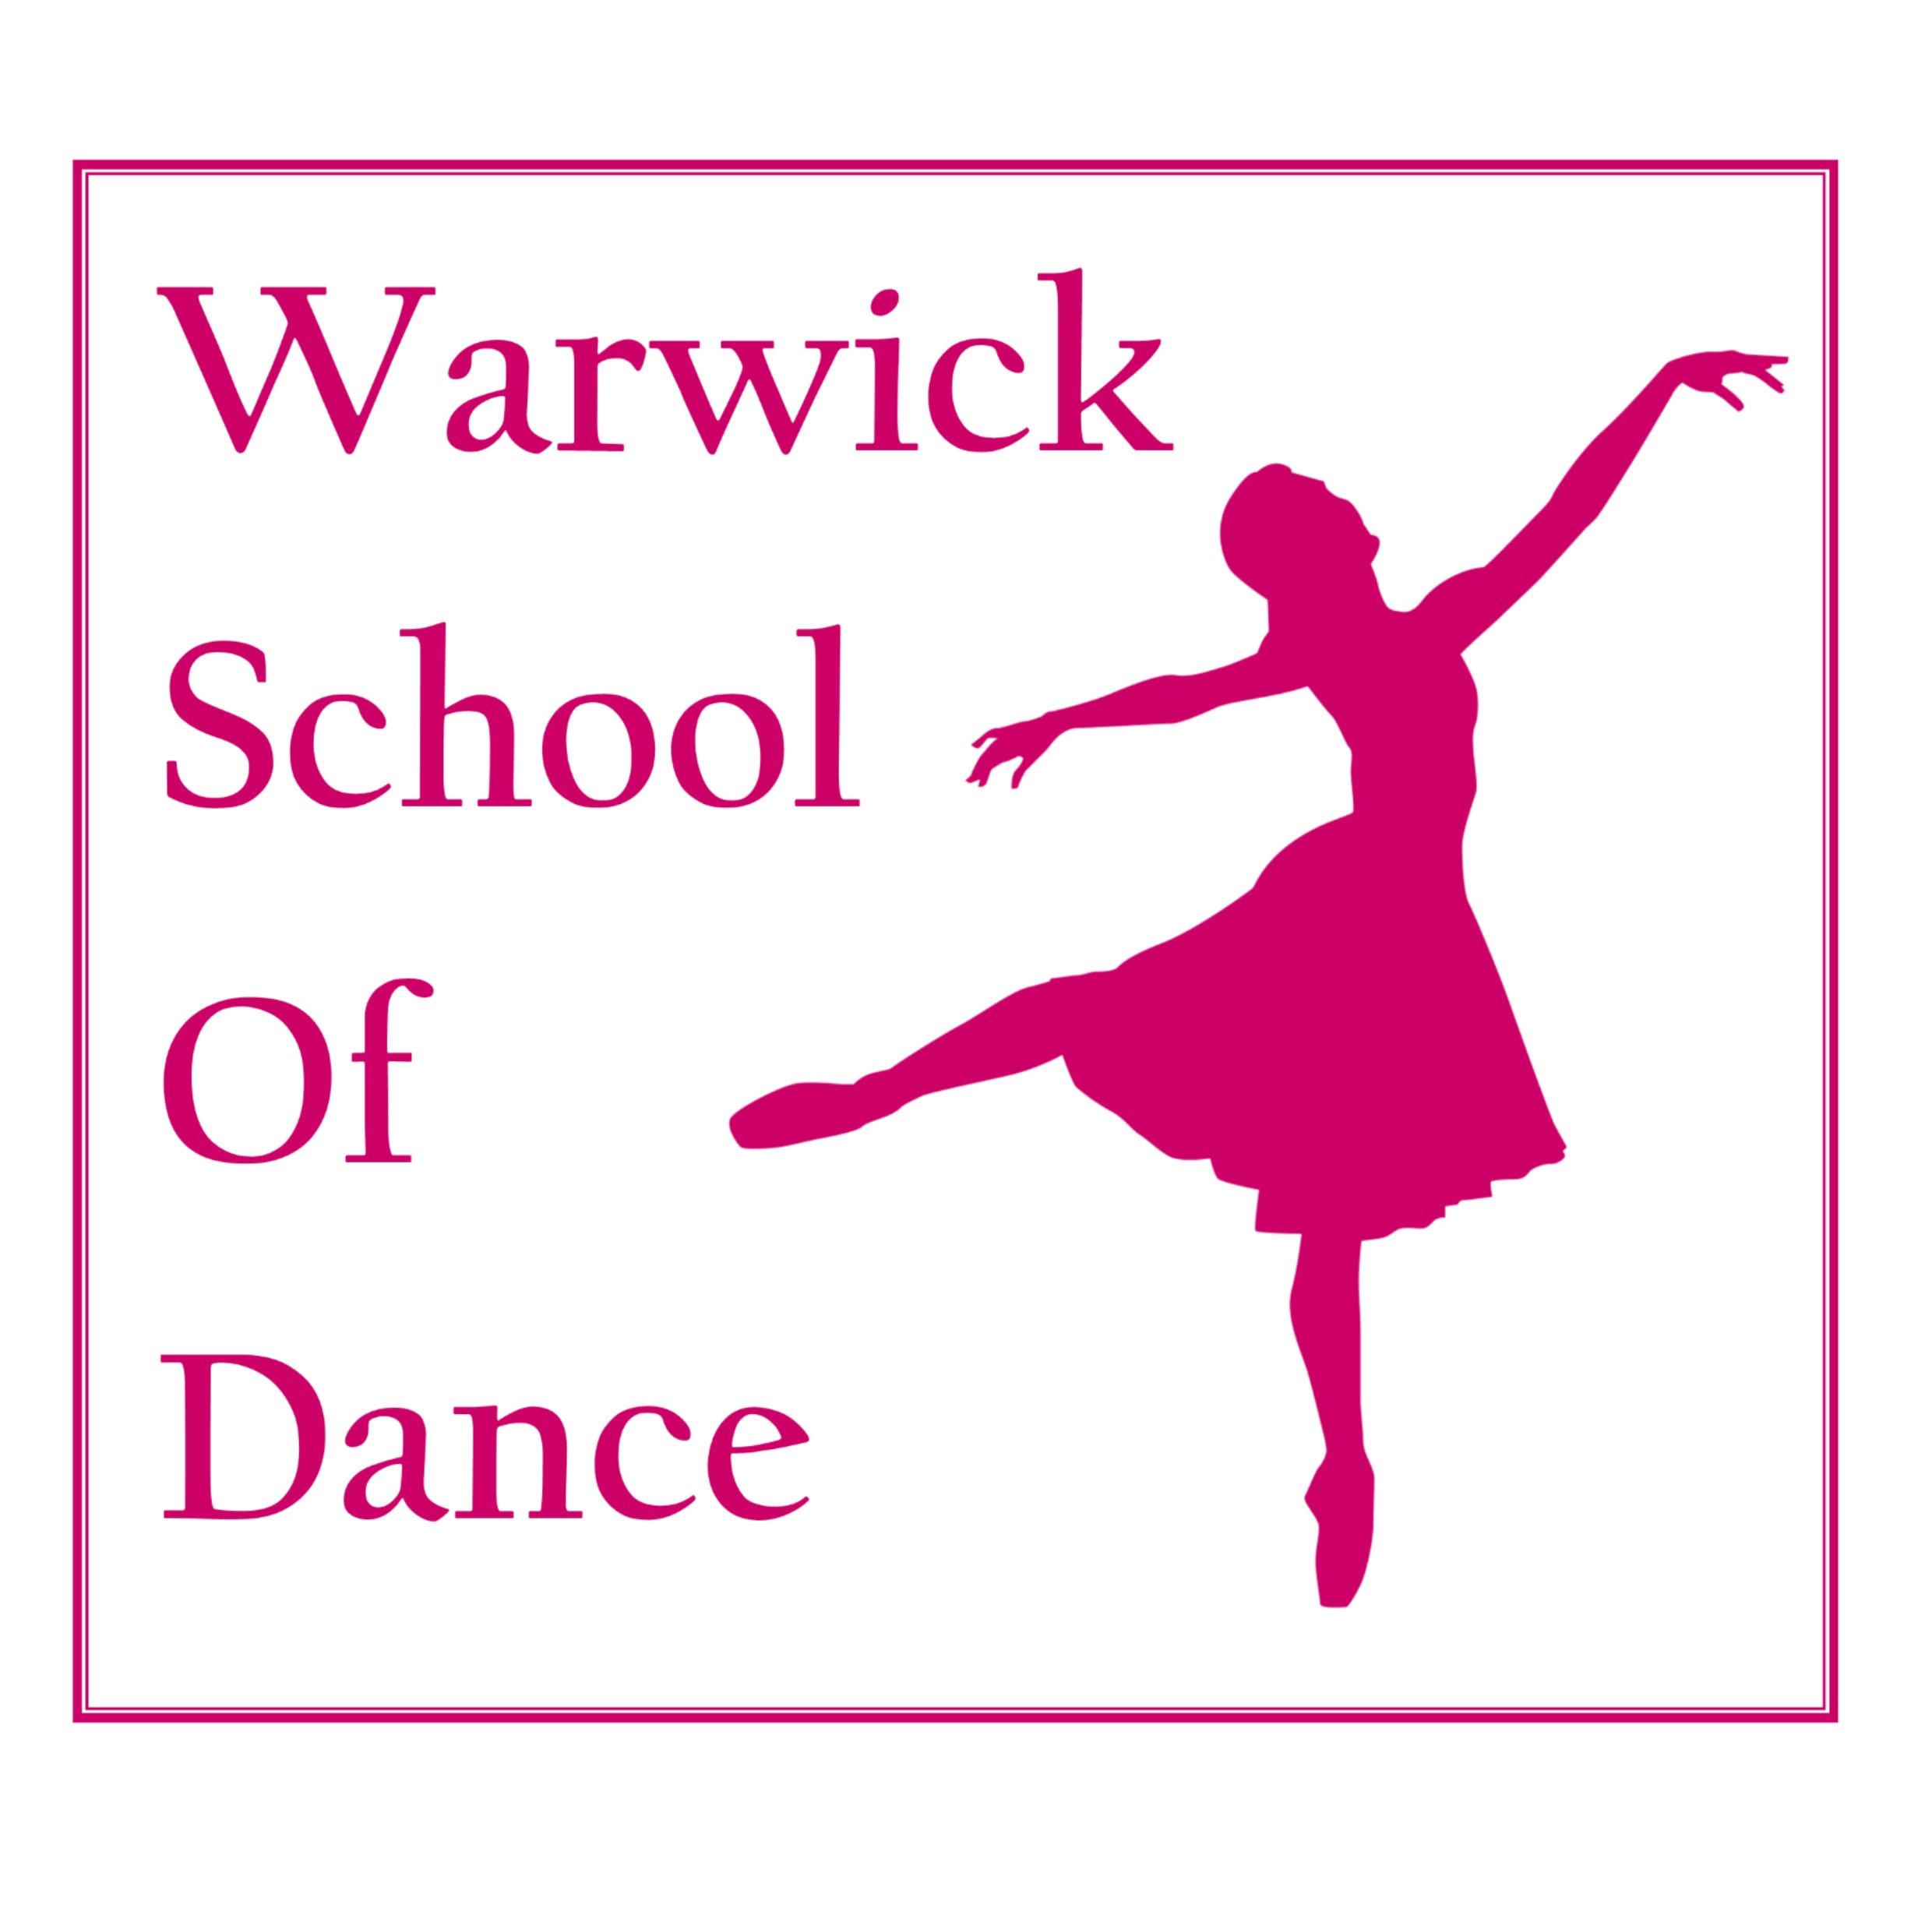 Warwick School of Dance